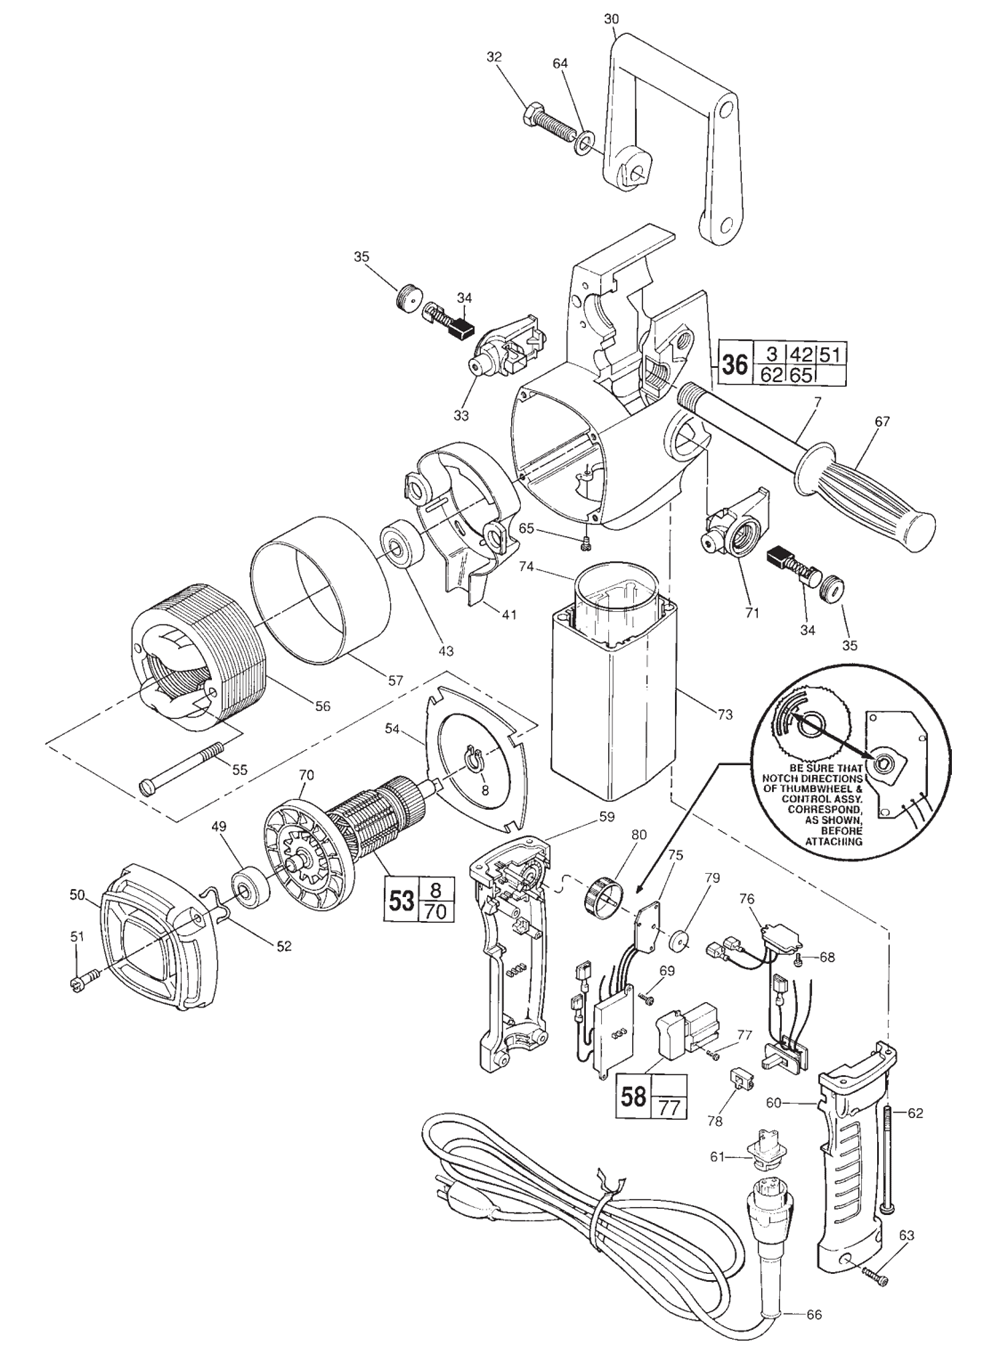 Milwaukee Drill Wiring Diagram on craftsman radial arm saw wiring diagram, dewalt drill wiring diagram, drill press wiring diagram, cordless drill wiring diagram, snap on wiring diagram,